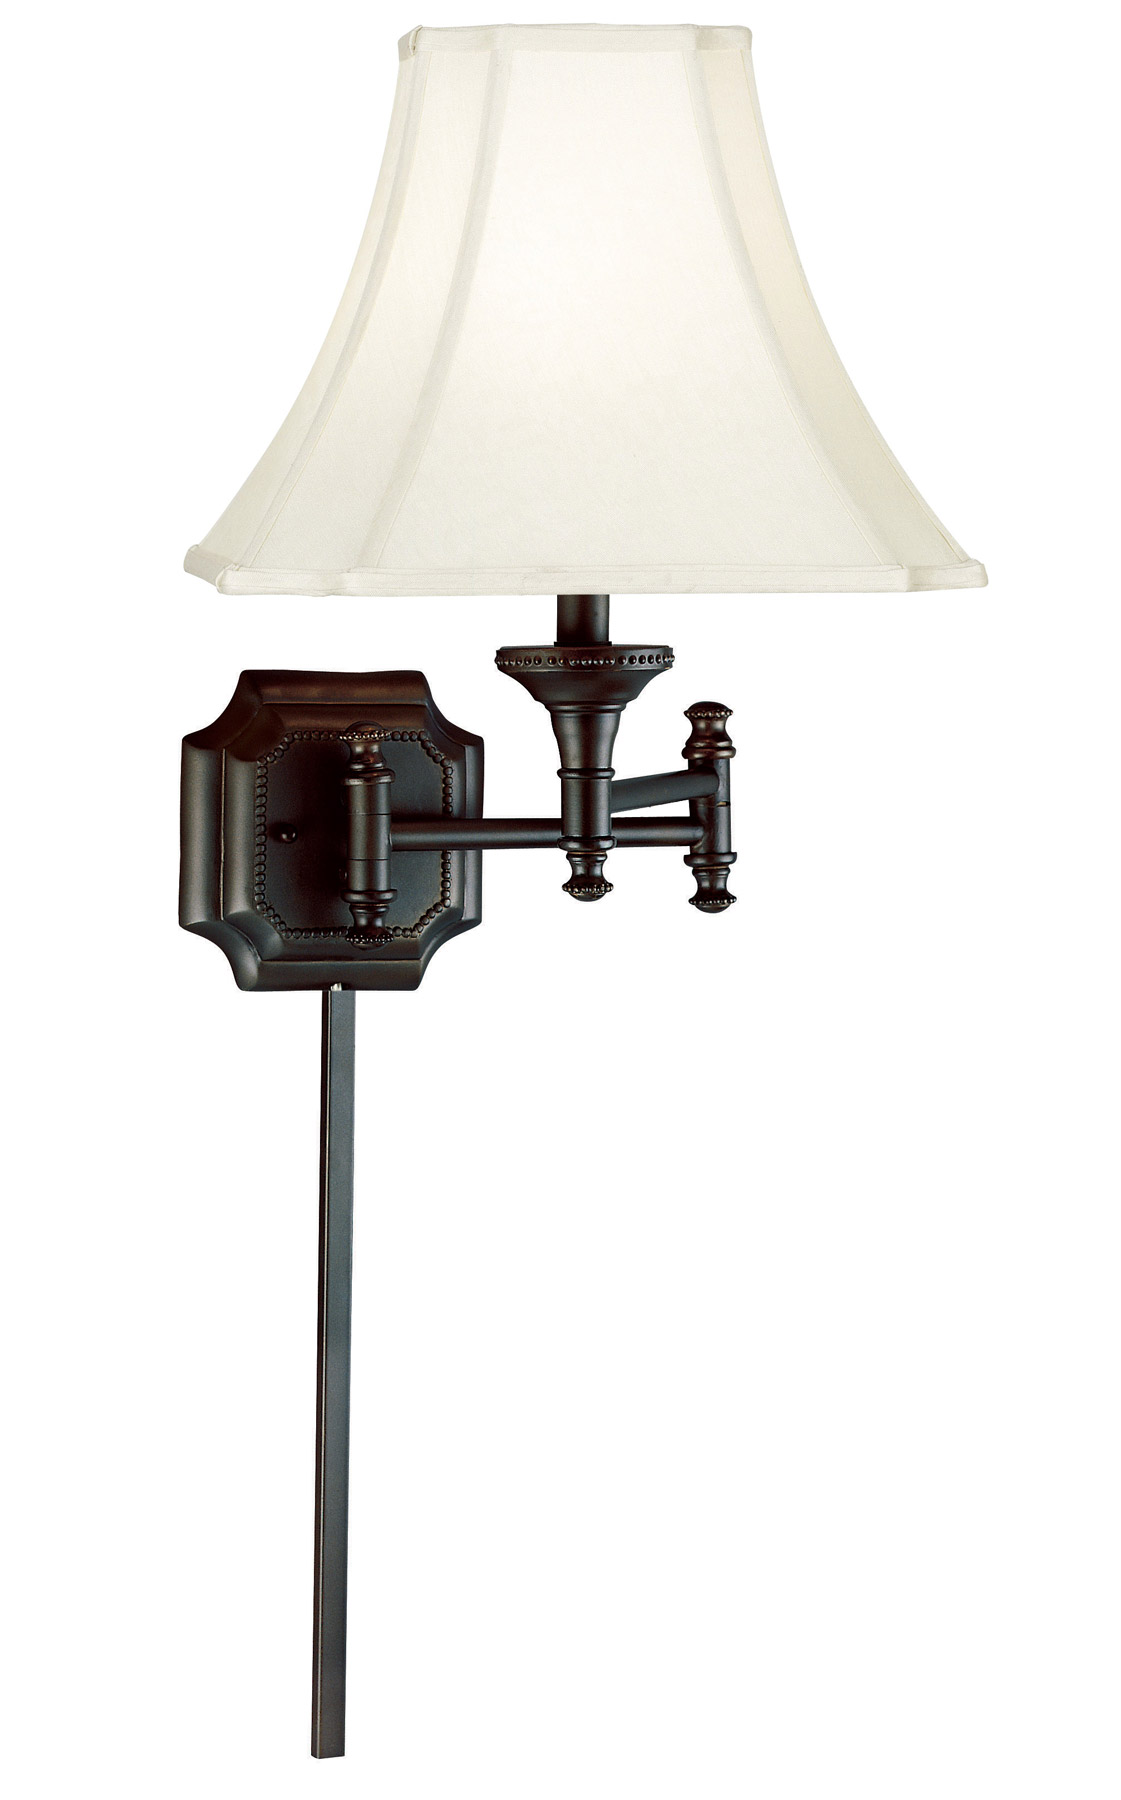 Kenroy Home 33054BBZ Wentworth Swing Arm Wall Lamp